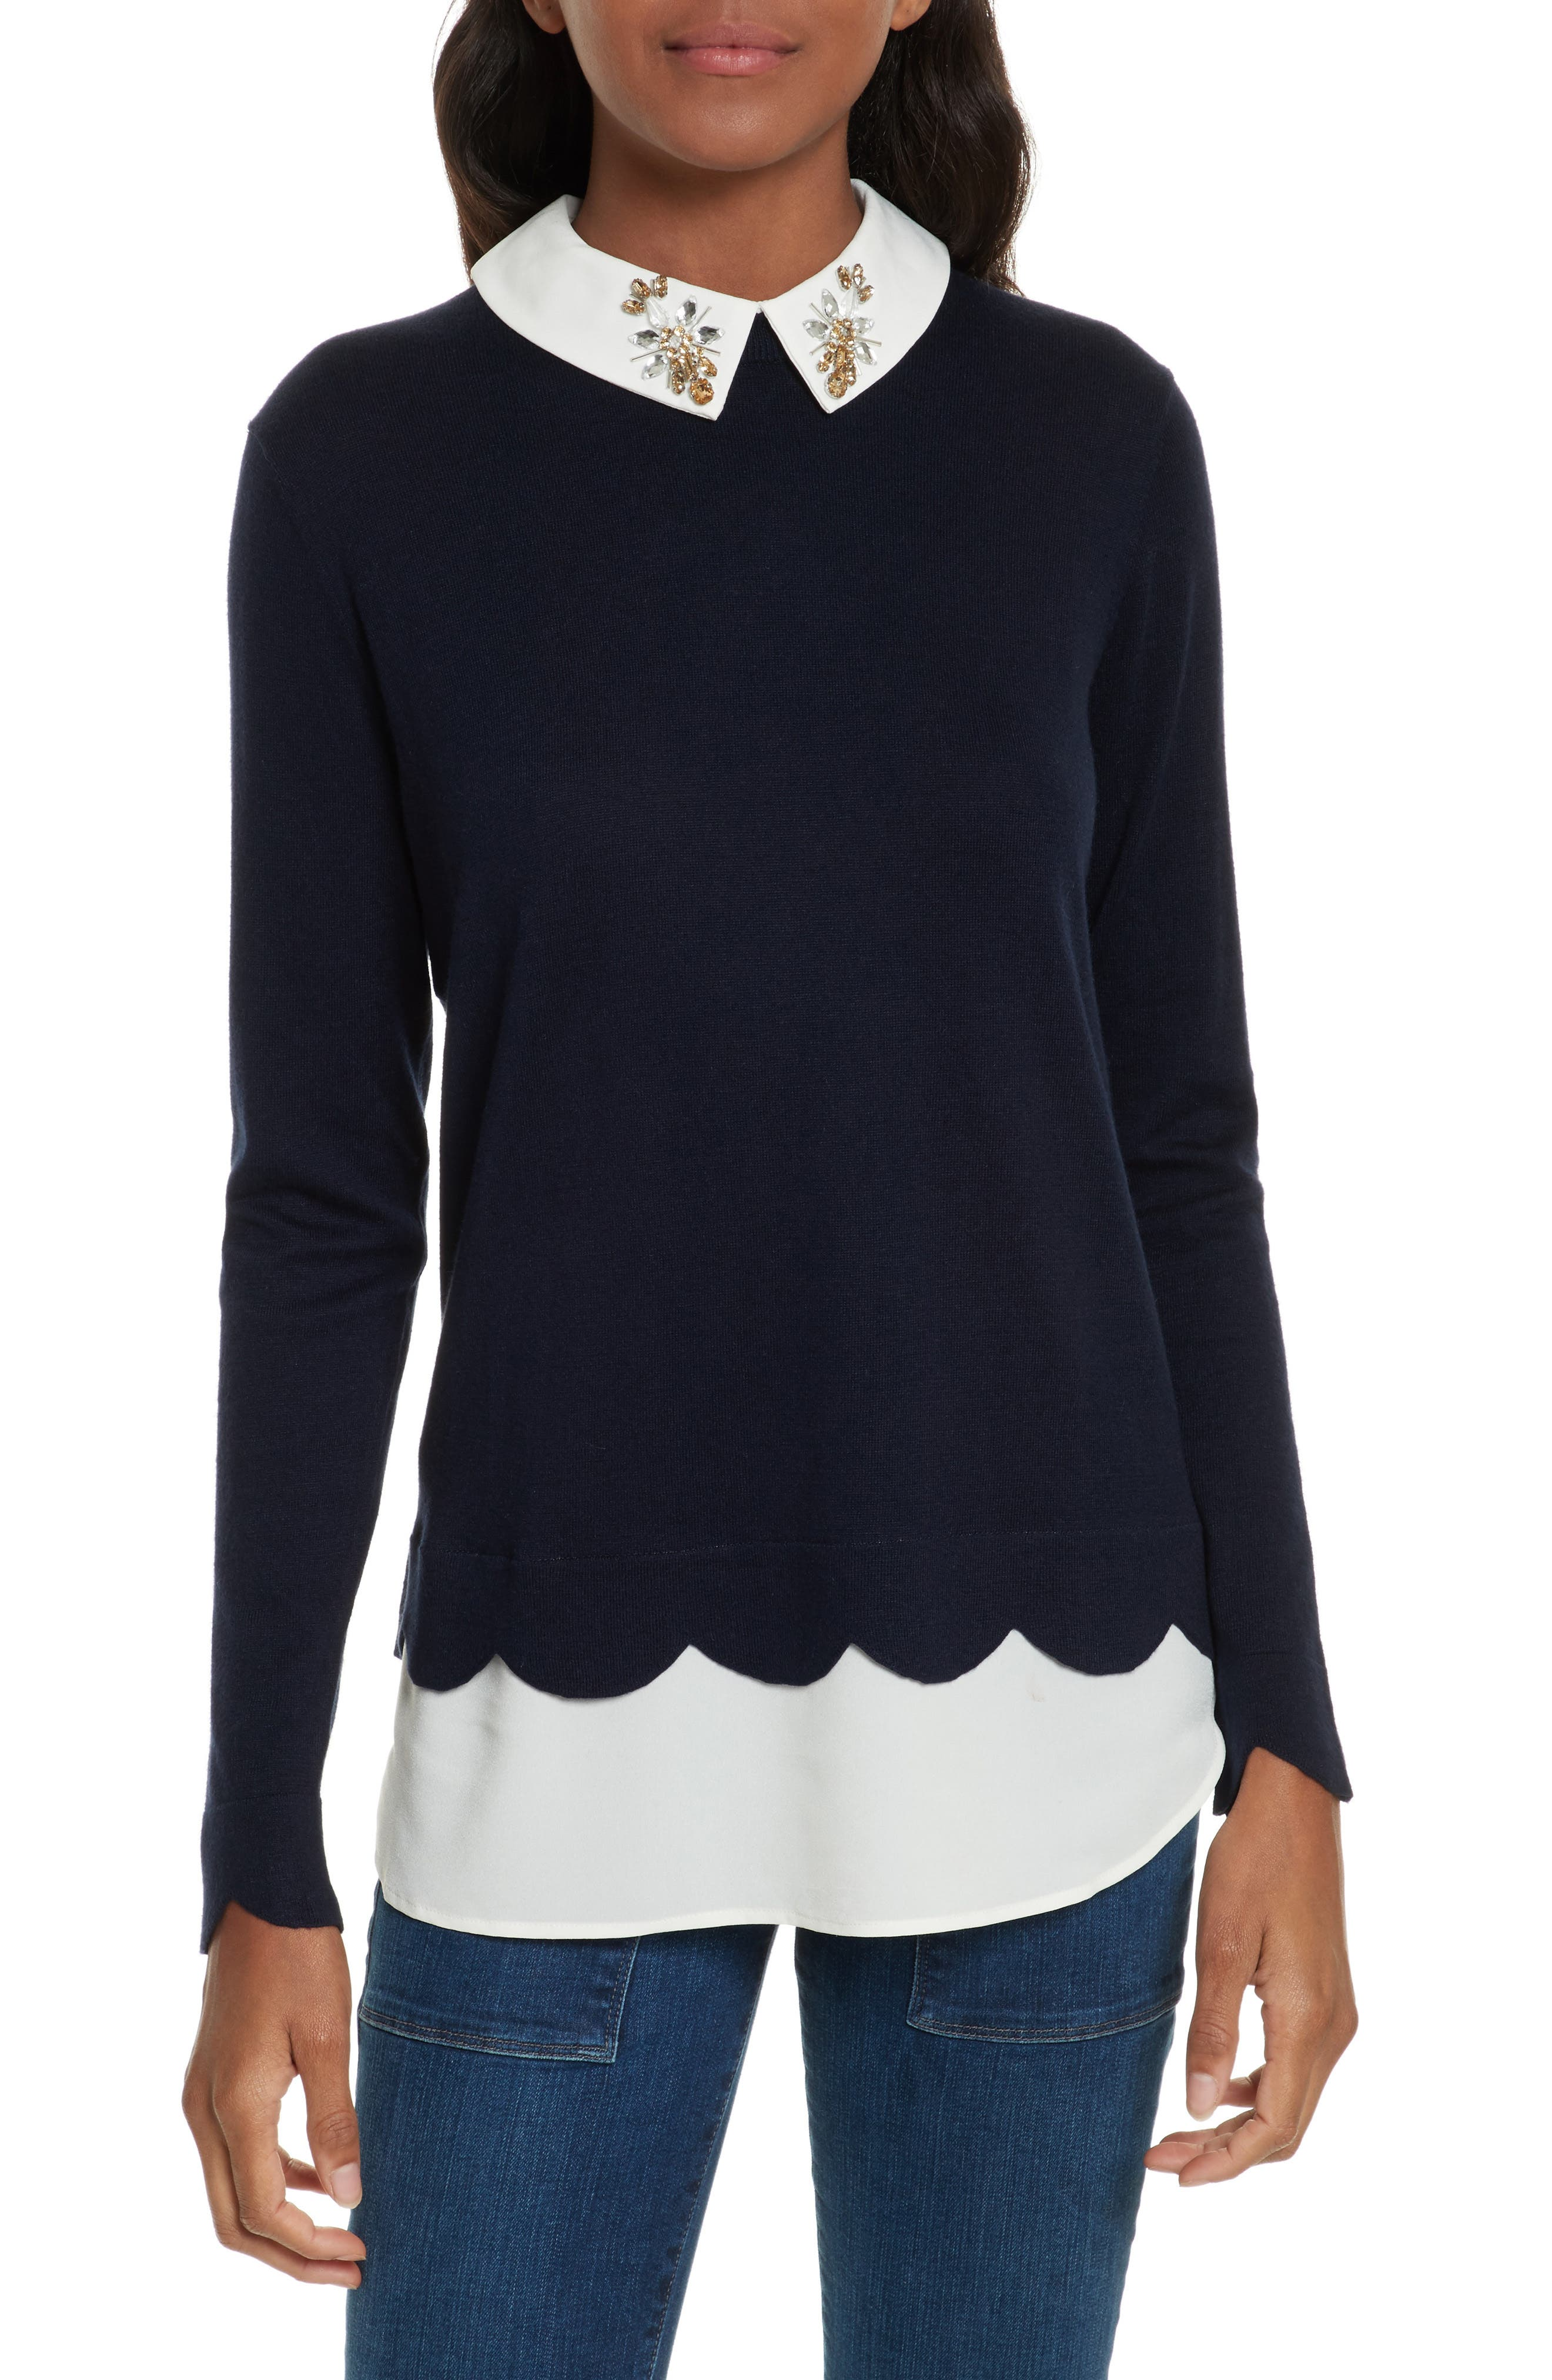 Ted Baker London Suzaine Embellished Layered Look Sweater